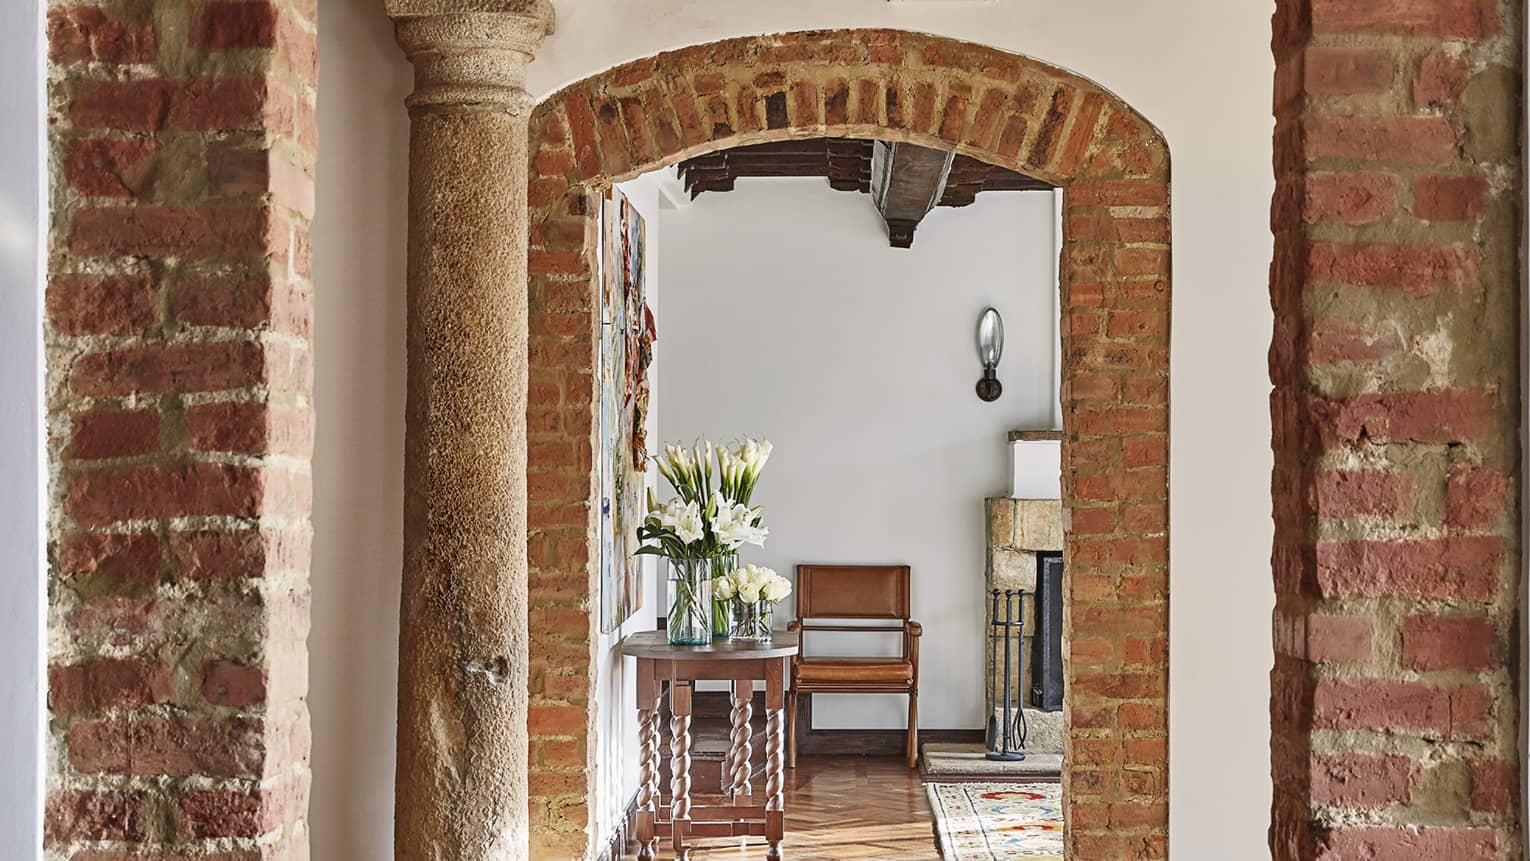 Rustic brick archways, pillars, lead to bright hotel room with wood table with fresh white flowers